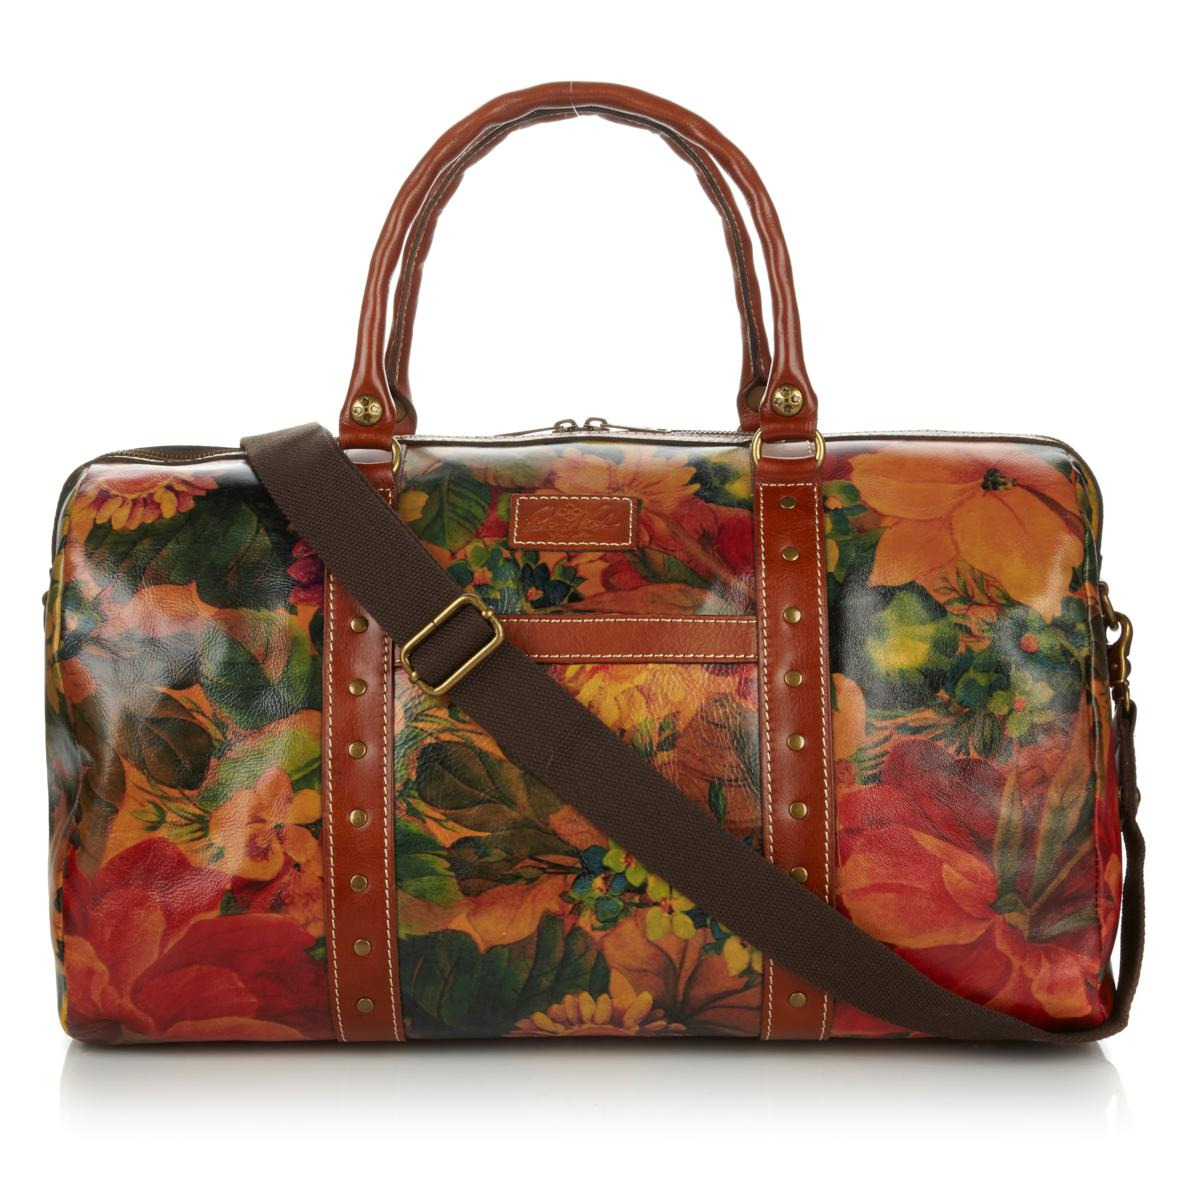 5dcce50ffd55 Speaking of Patricia Nash – I saw this lush leather weekender duffel bag